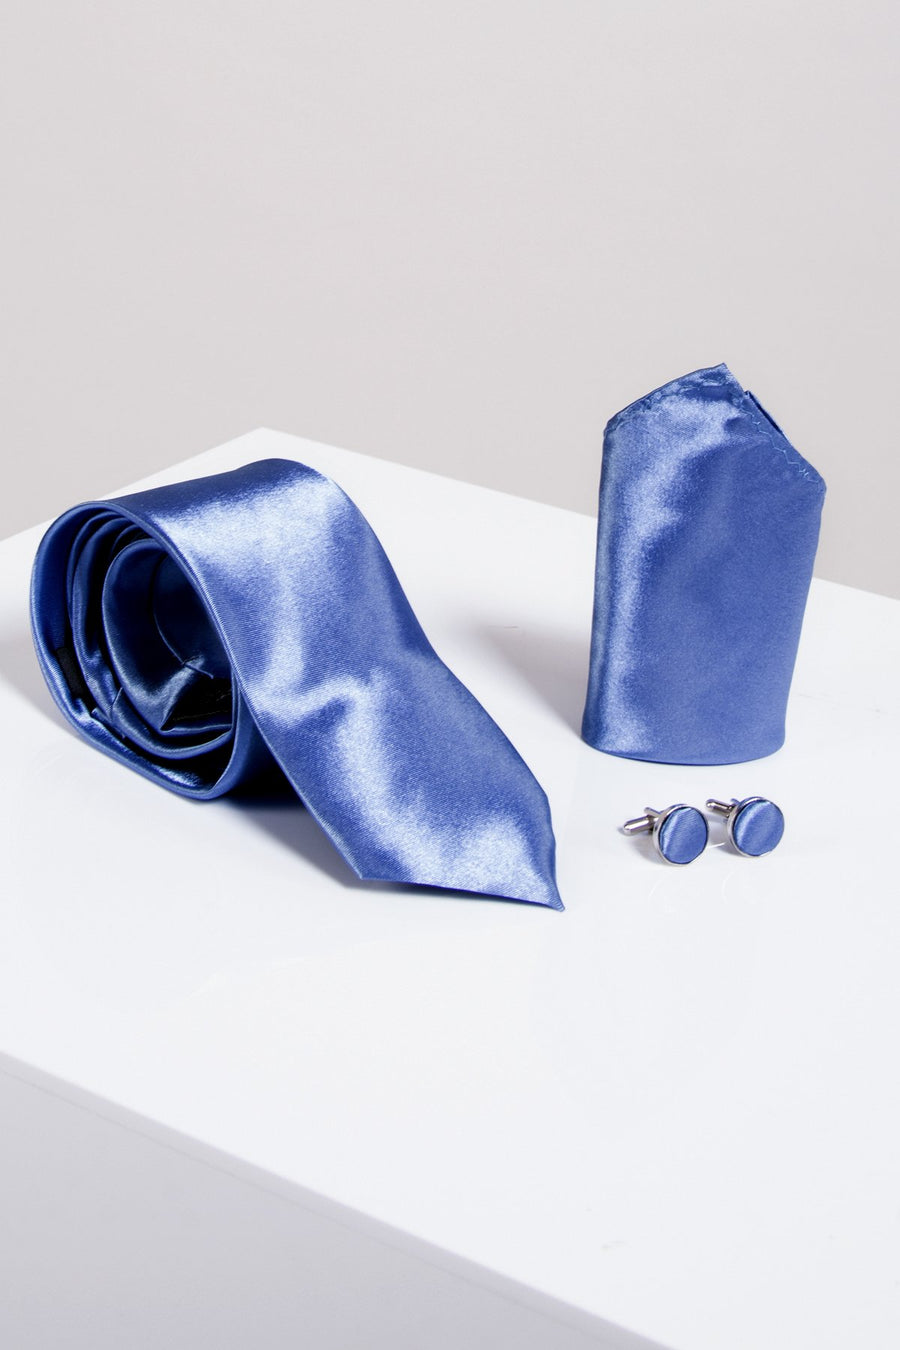 ST Satin Tie, Cufflink & Pocket Square In Sky Blue - Wedding Suit Direct